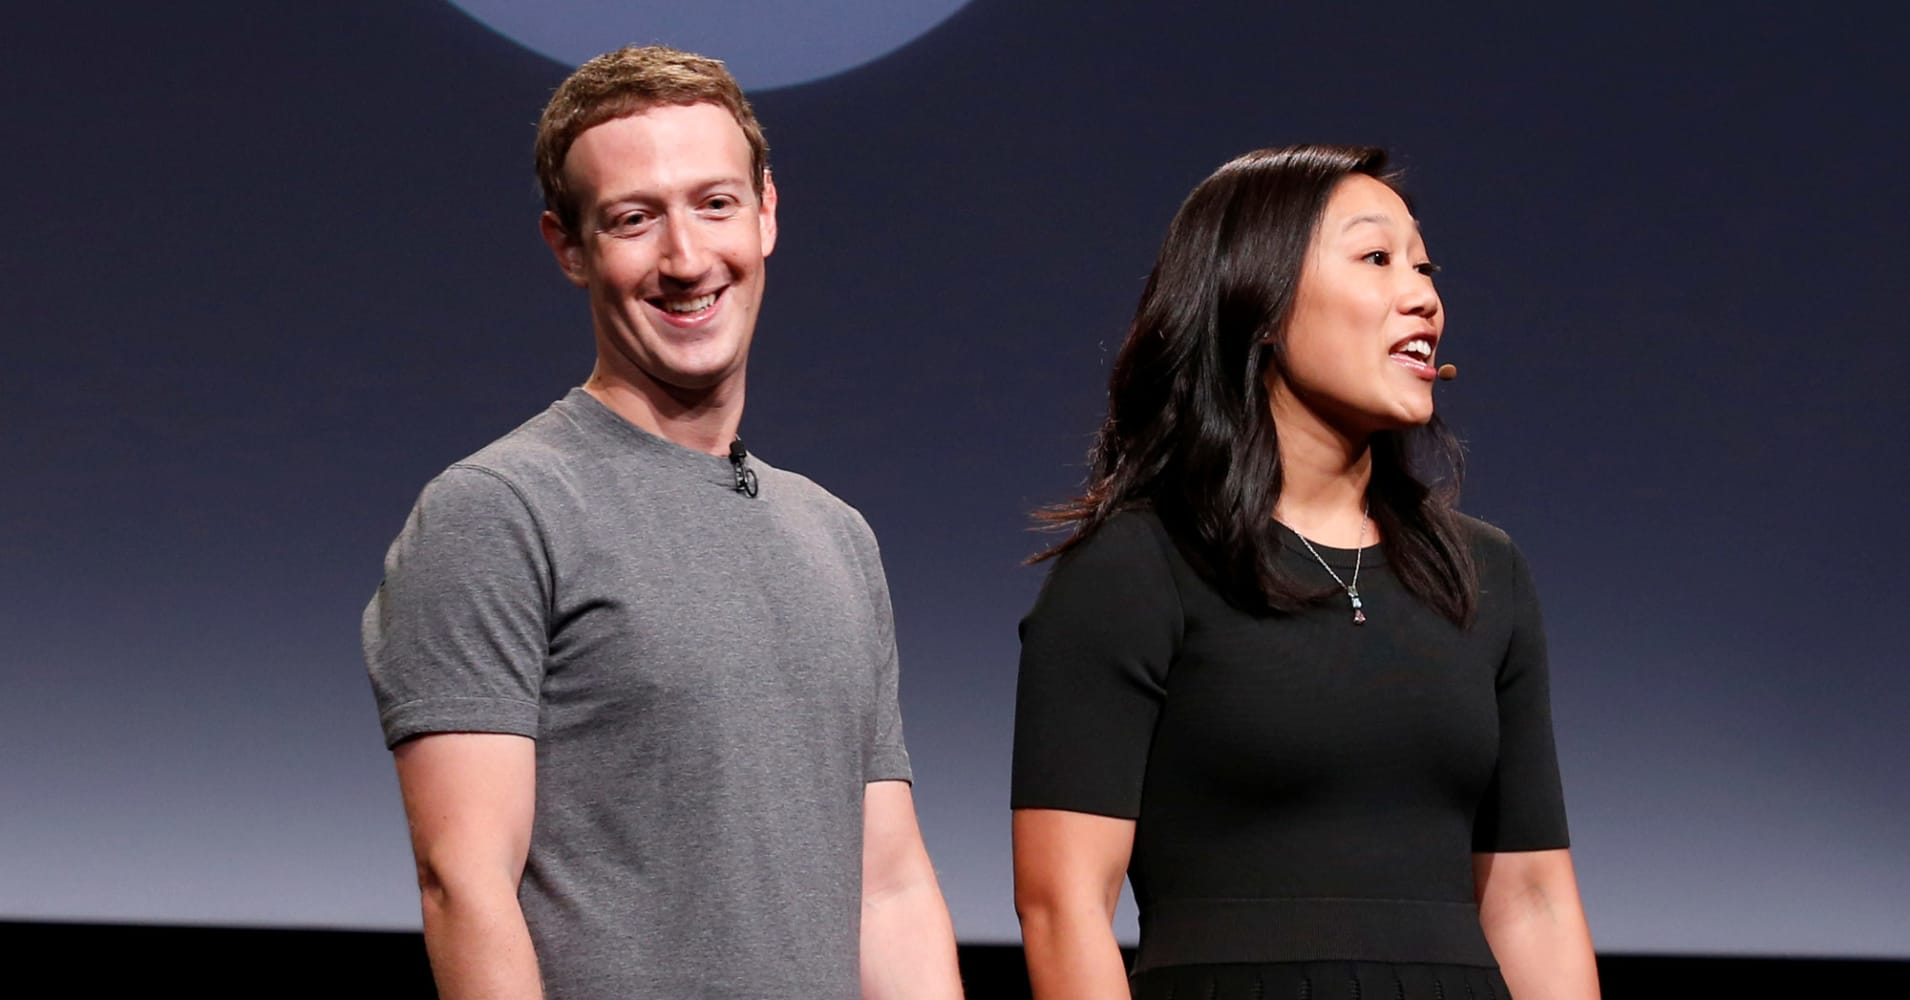 Mark Zuckerberg will take two months\' paternity leave later this year